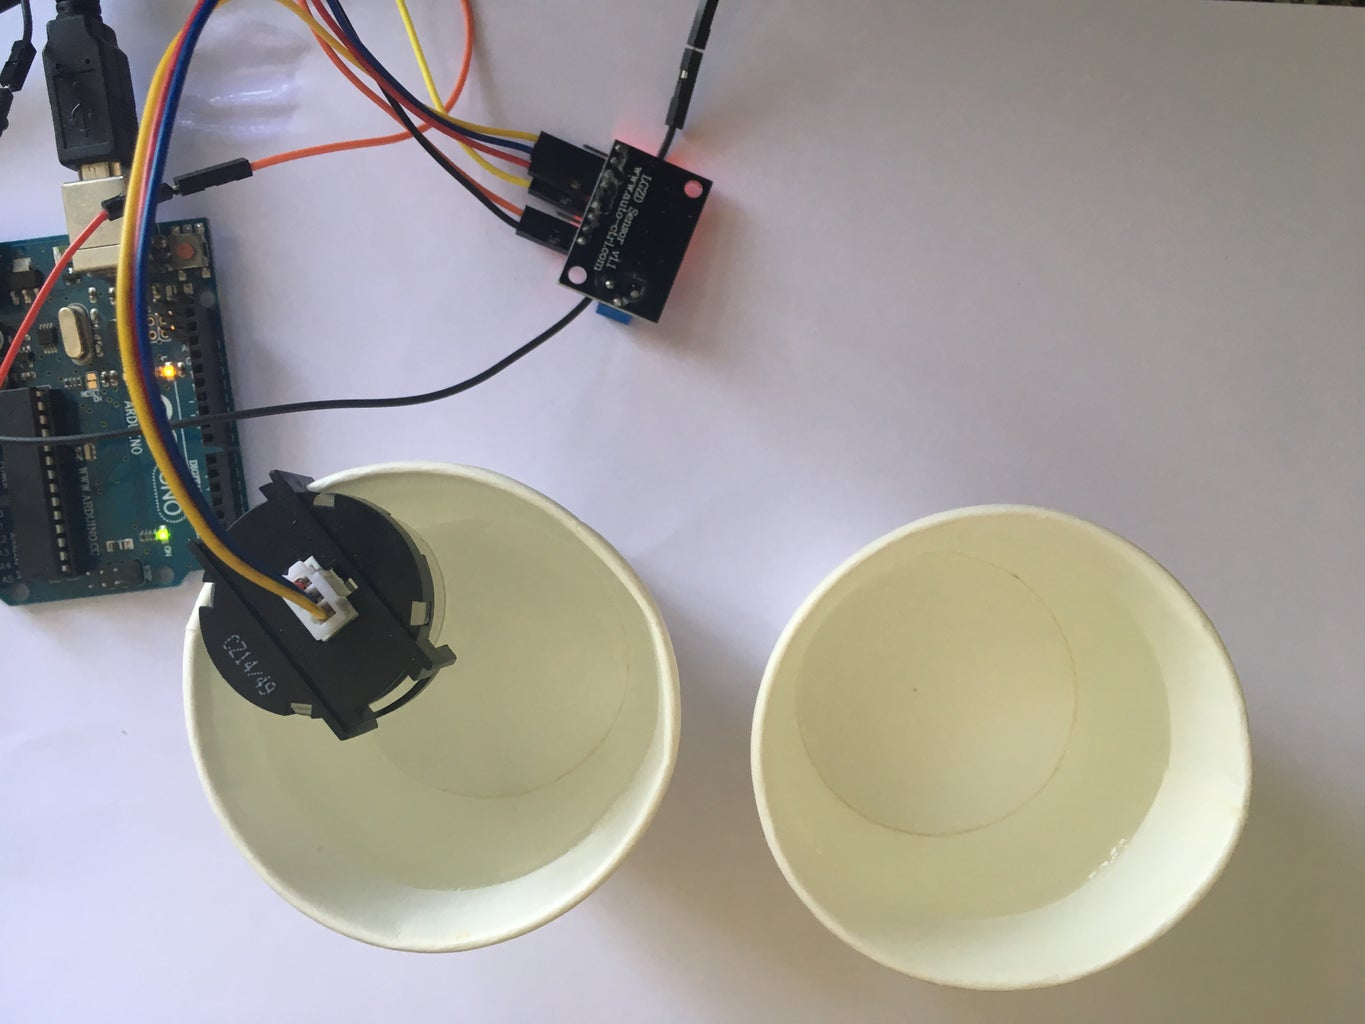 Setting Up the Turbidity Sensor and Display With Serial Plotter